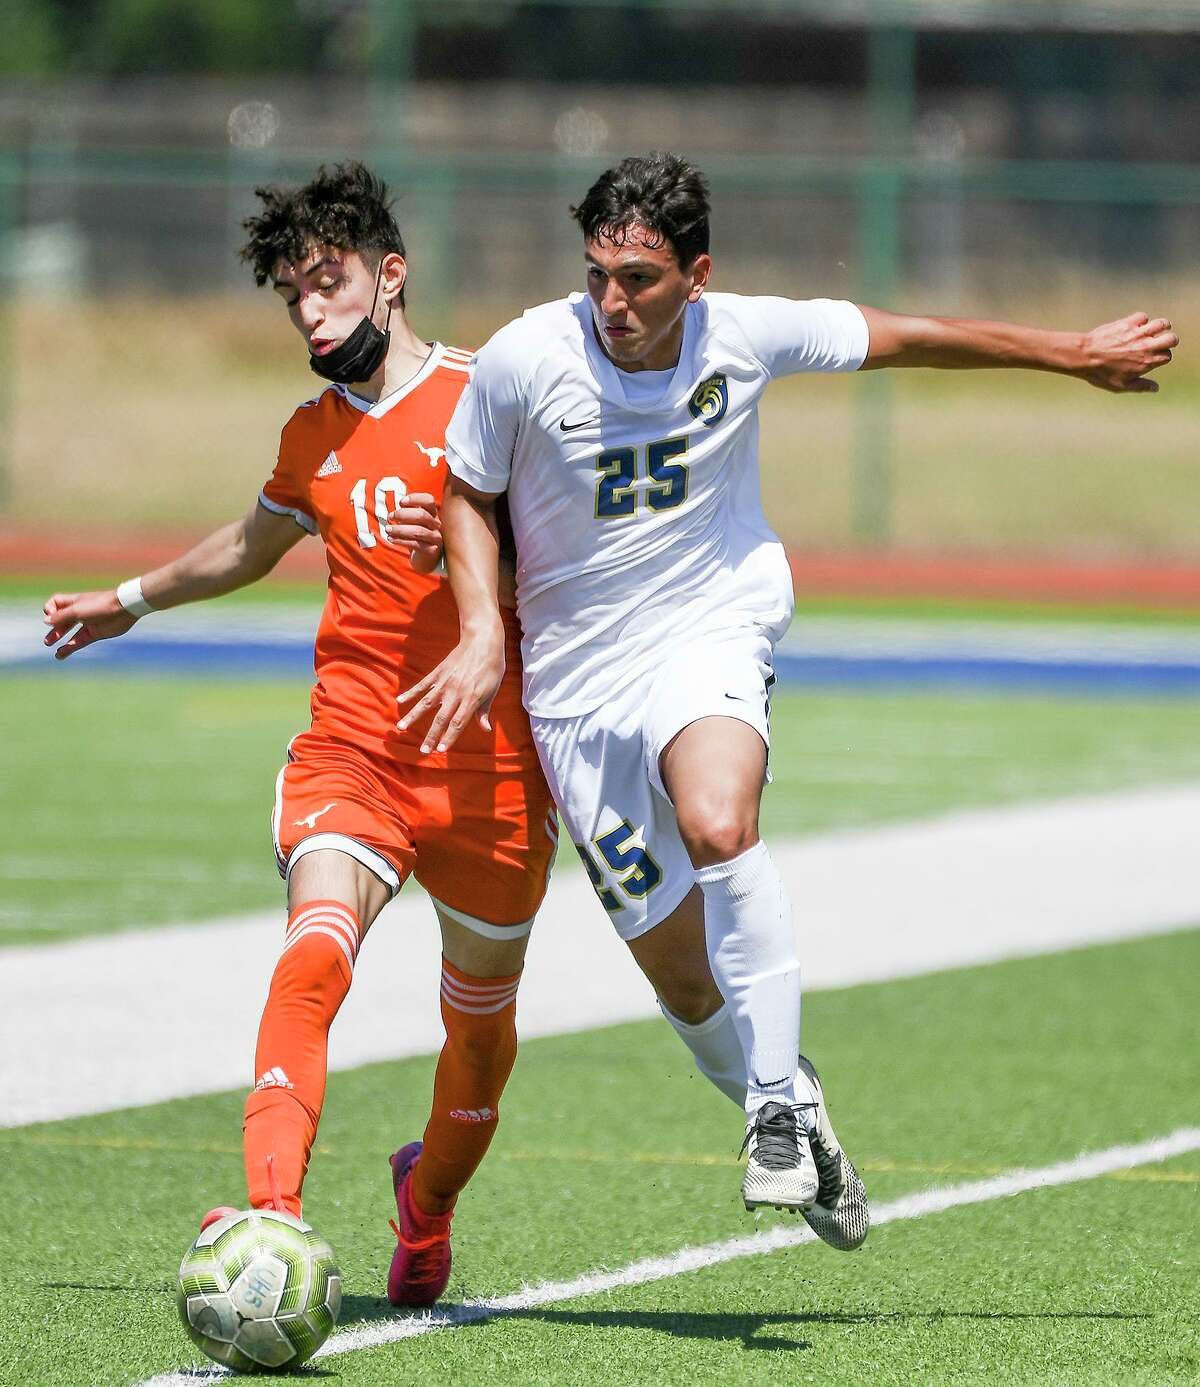 Braulio Medina and United host San Antonio Harlan at 7 p.m. Friday at the SAC in the third round of the playoffs.